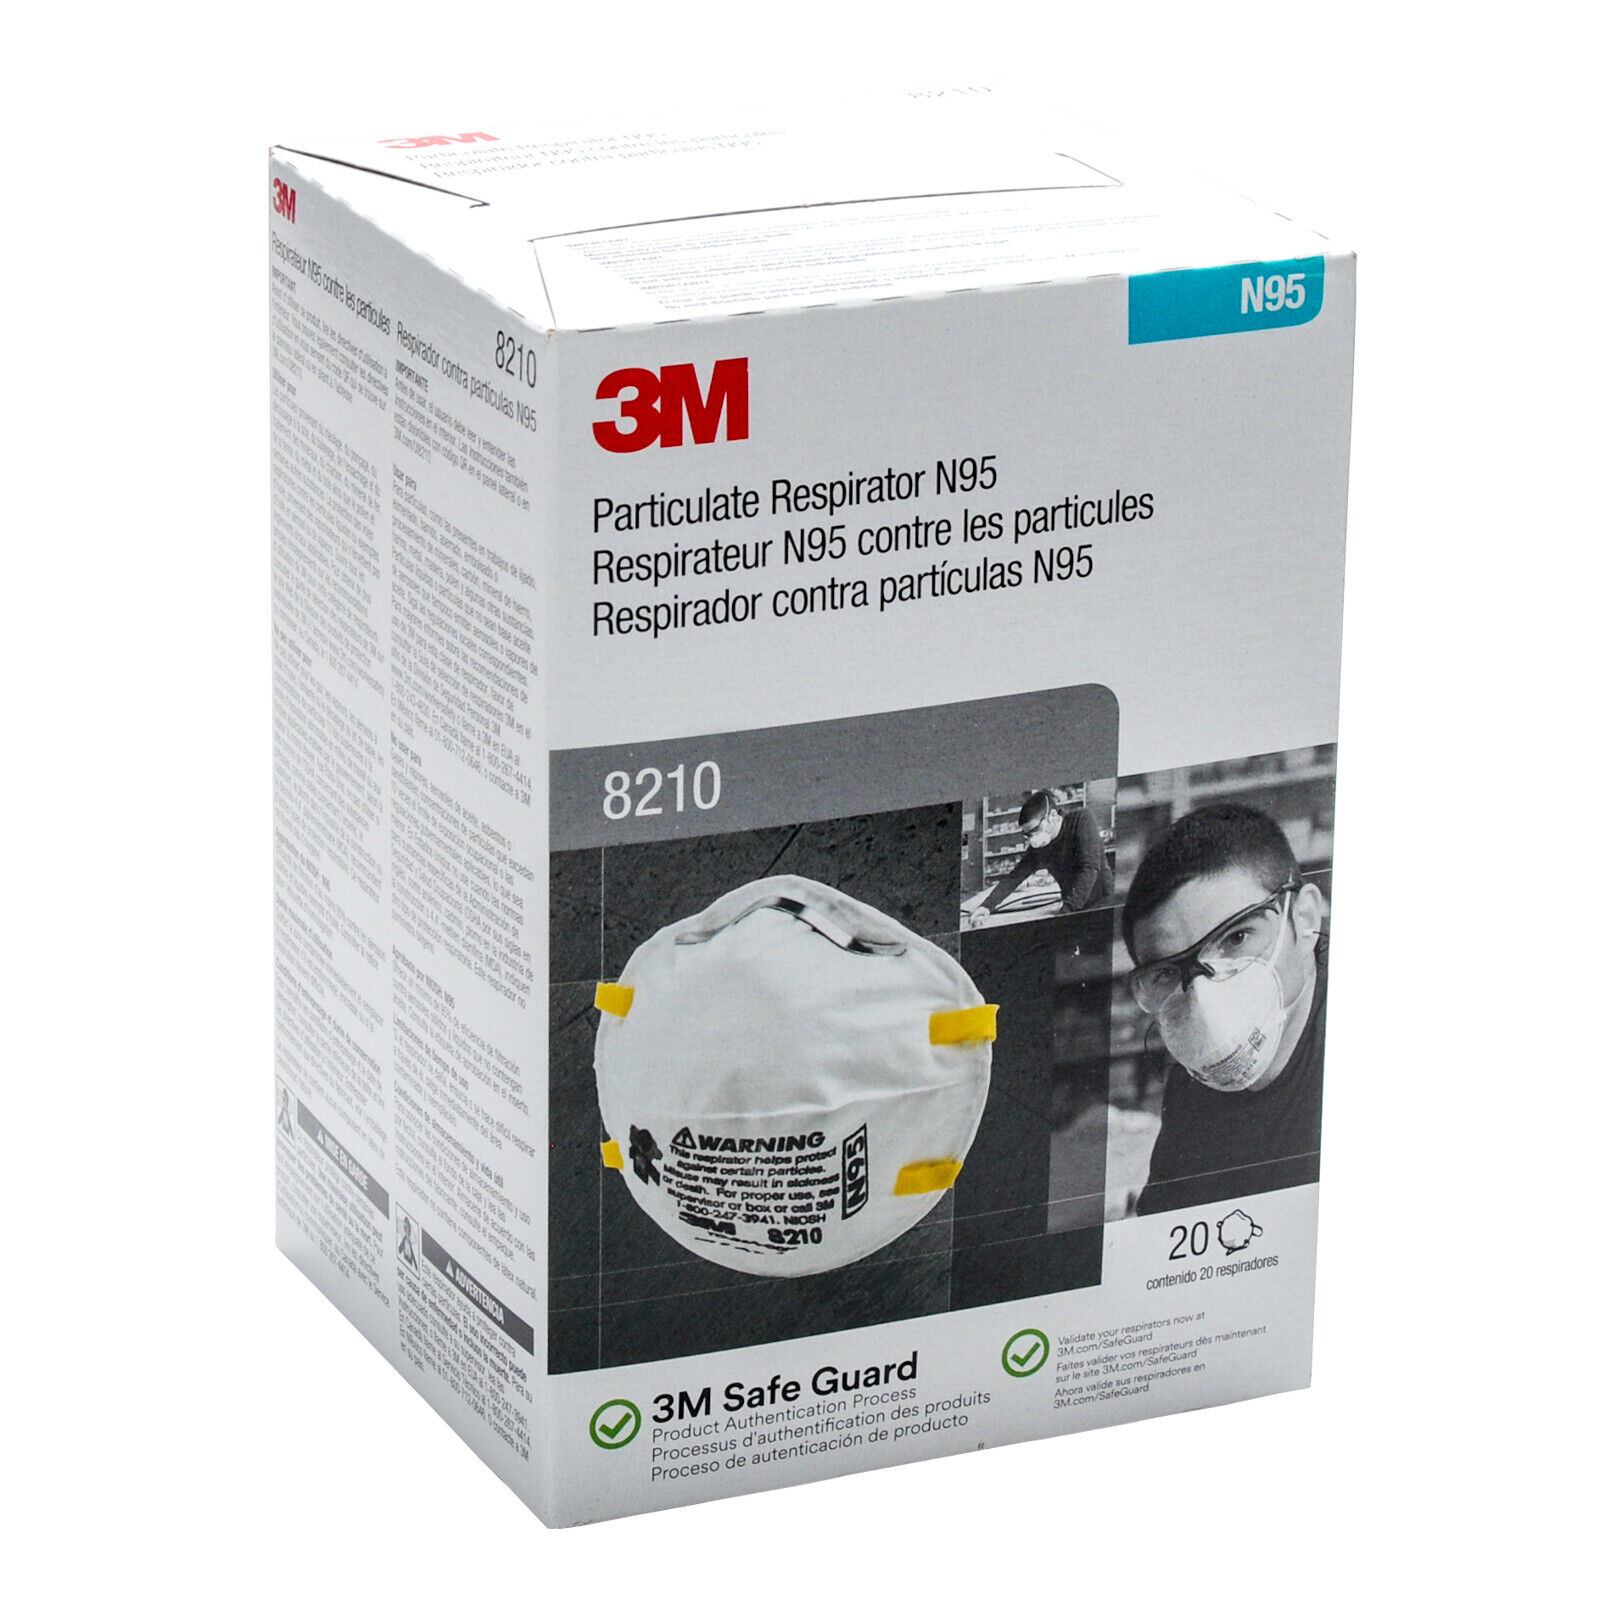 3M8210 Particulat Respiratoor N95, 1- Box of 20, EXP. Date 04/2026 Auto Paints & Supplies